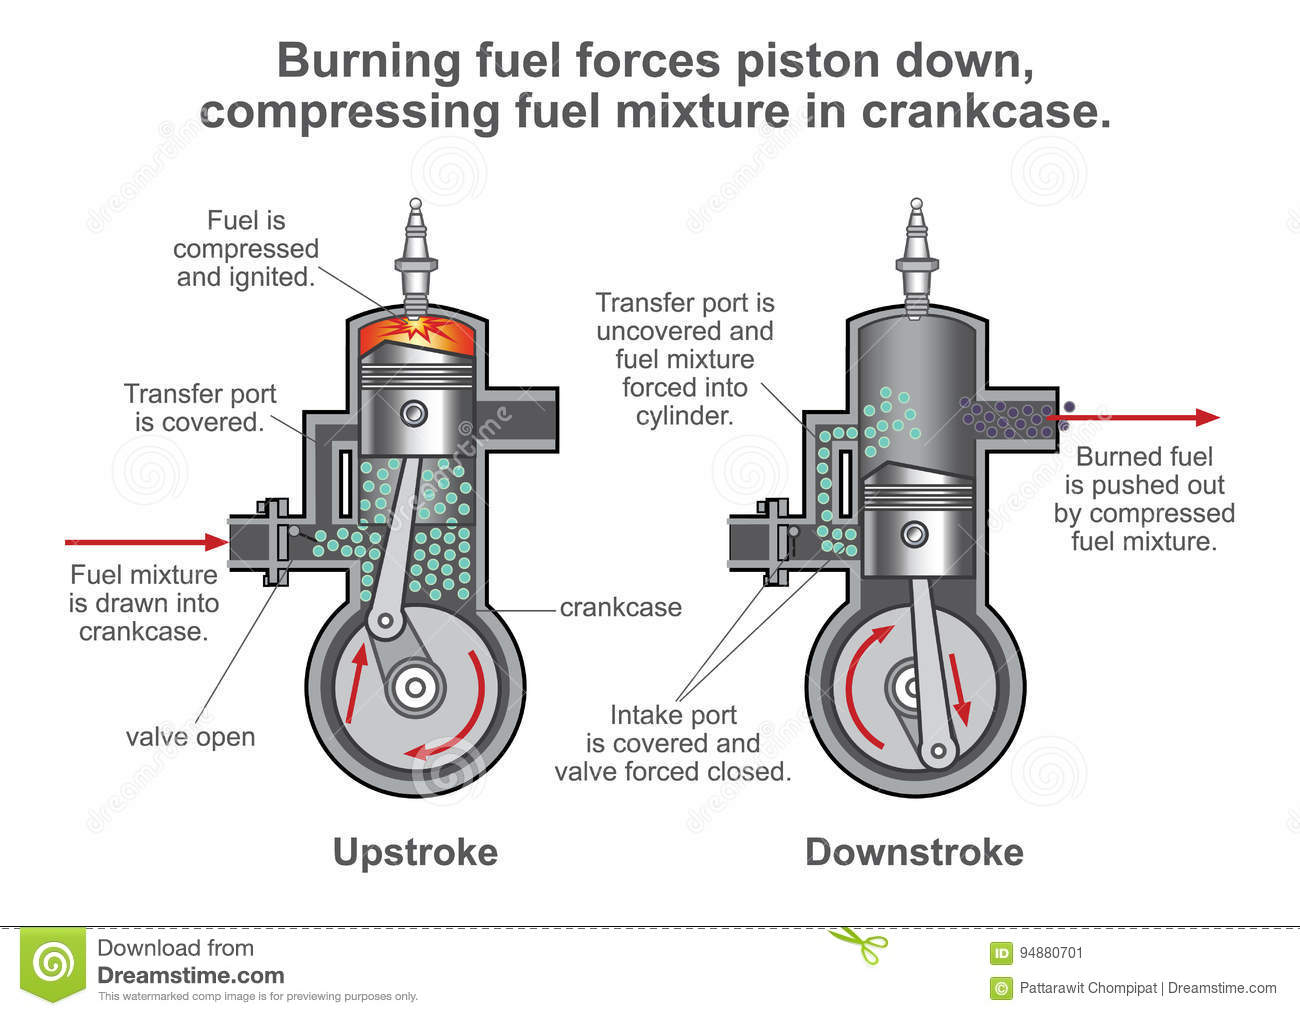 hight resolution of internal combustion engine is a heat engine where the combustion of a fuel occurs with an oxidizer in a combustion chamber that is an integral part of the